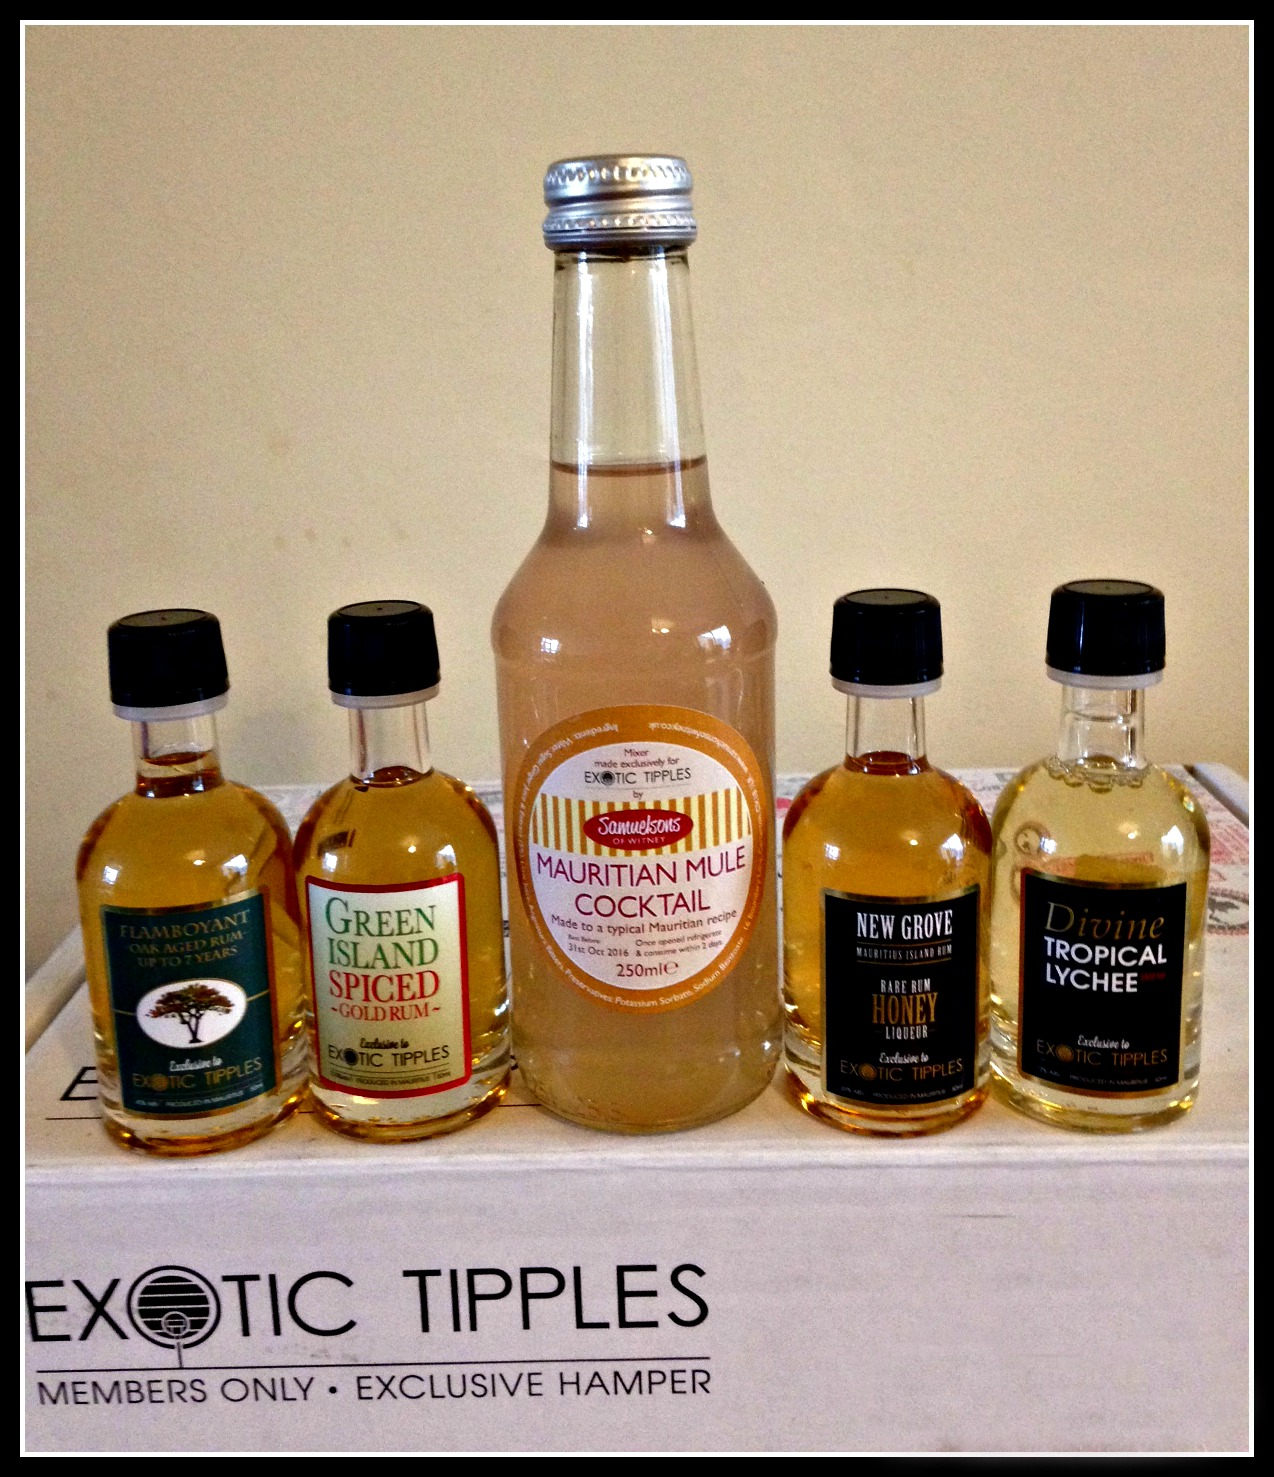 Exotic Tipples? Don't mind if I do.